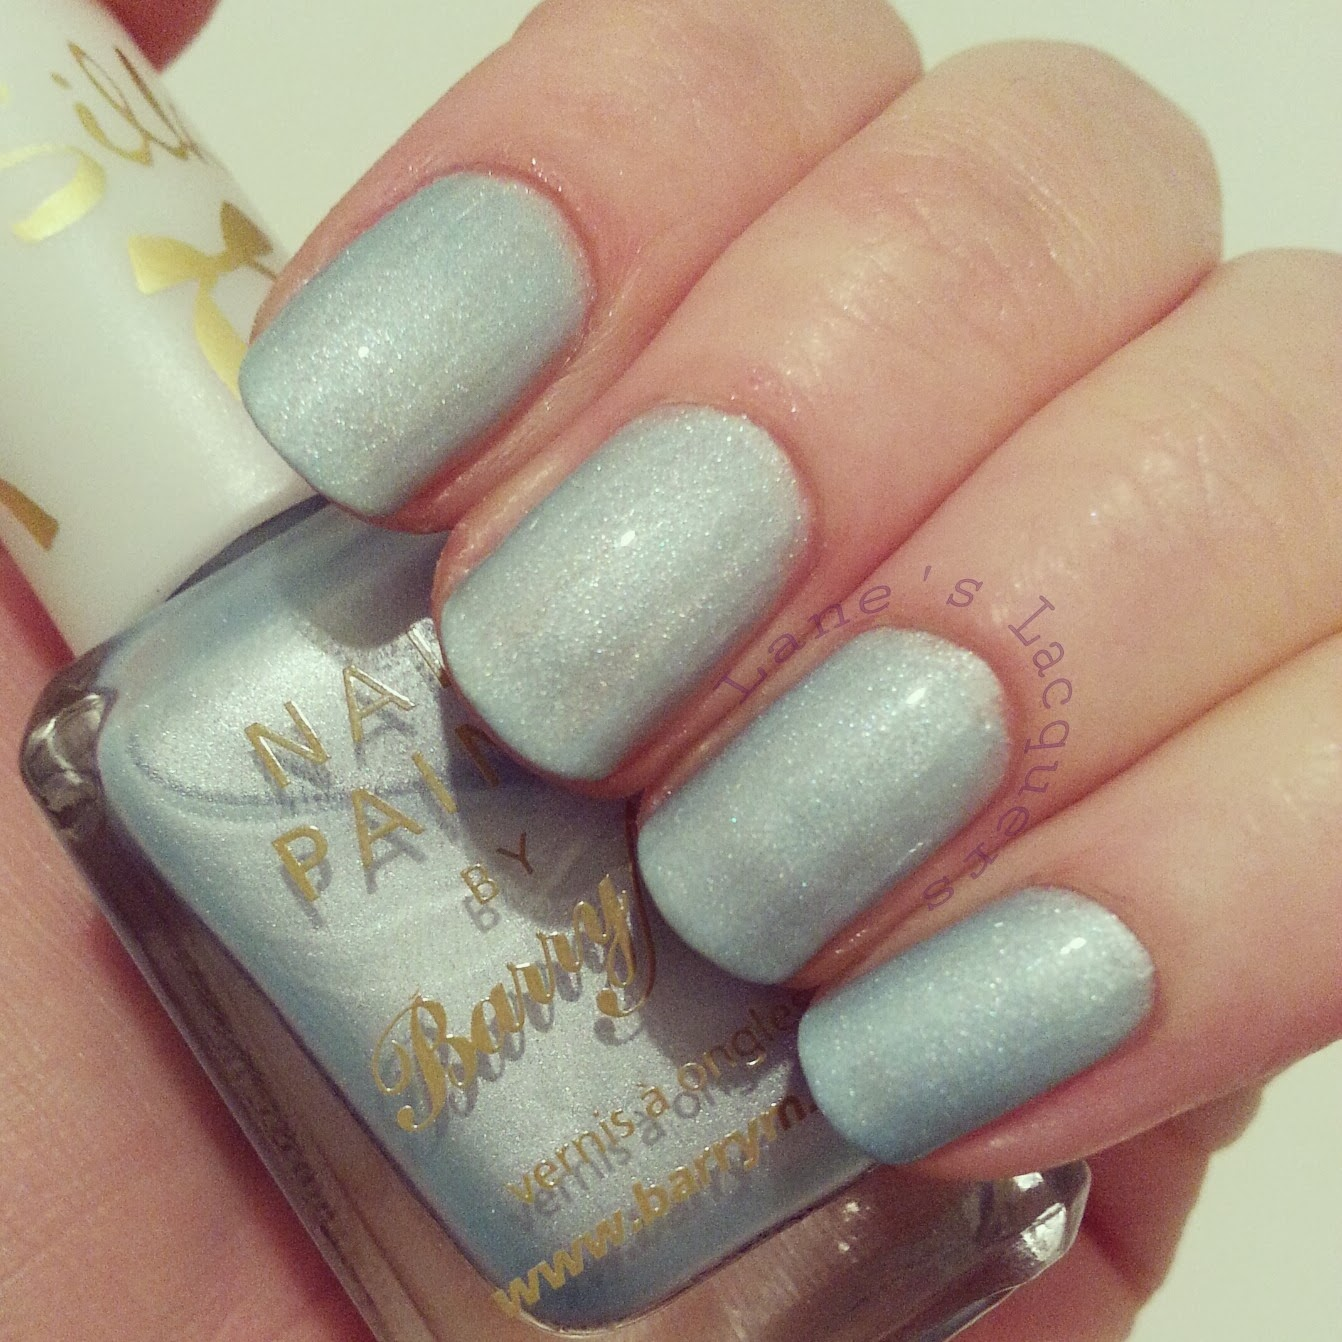 barry-m-silk-mist-topcoat-swatch-nails